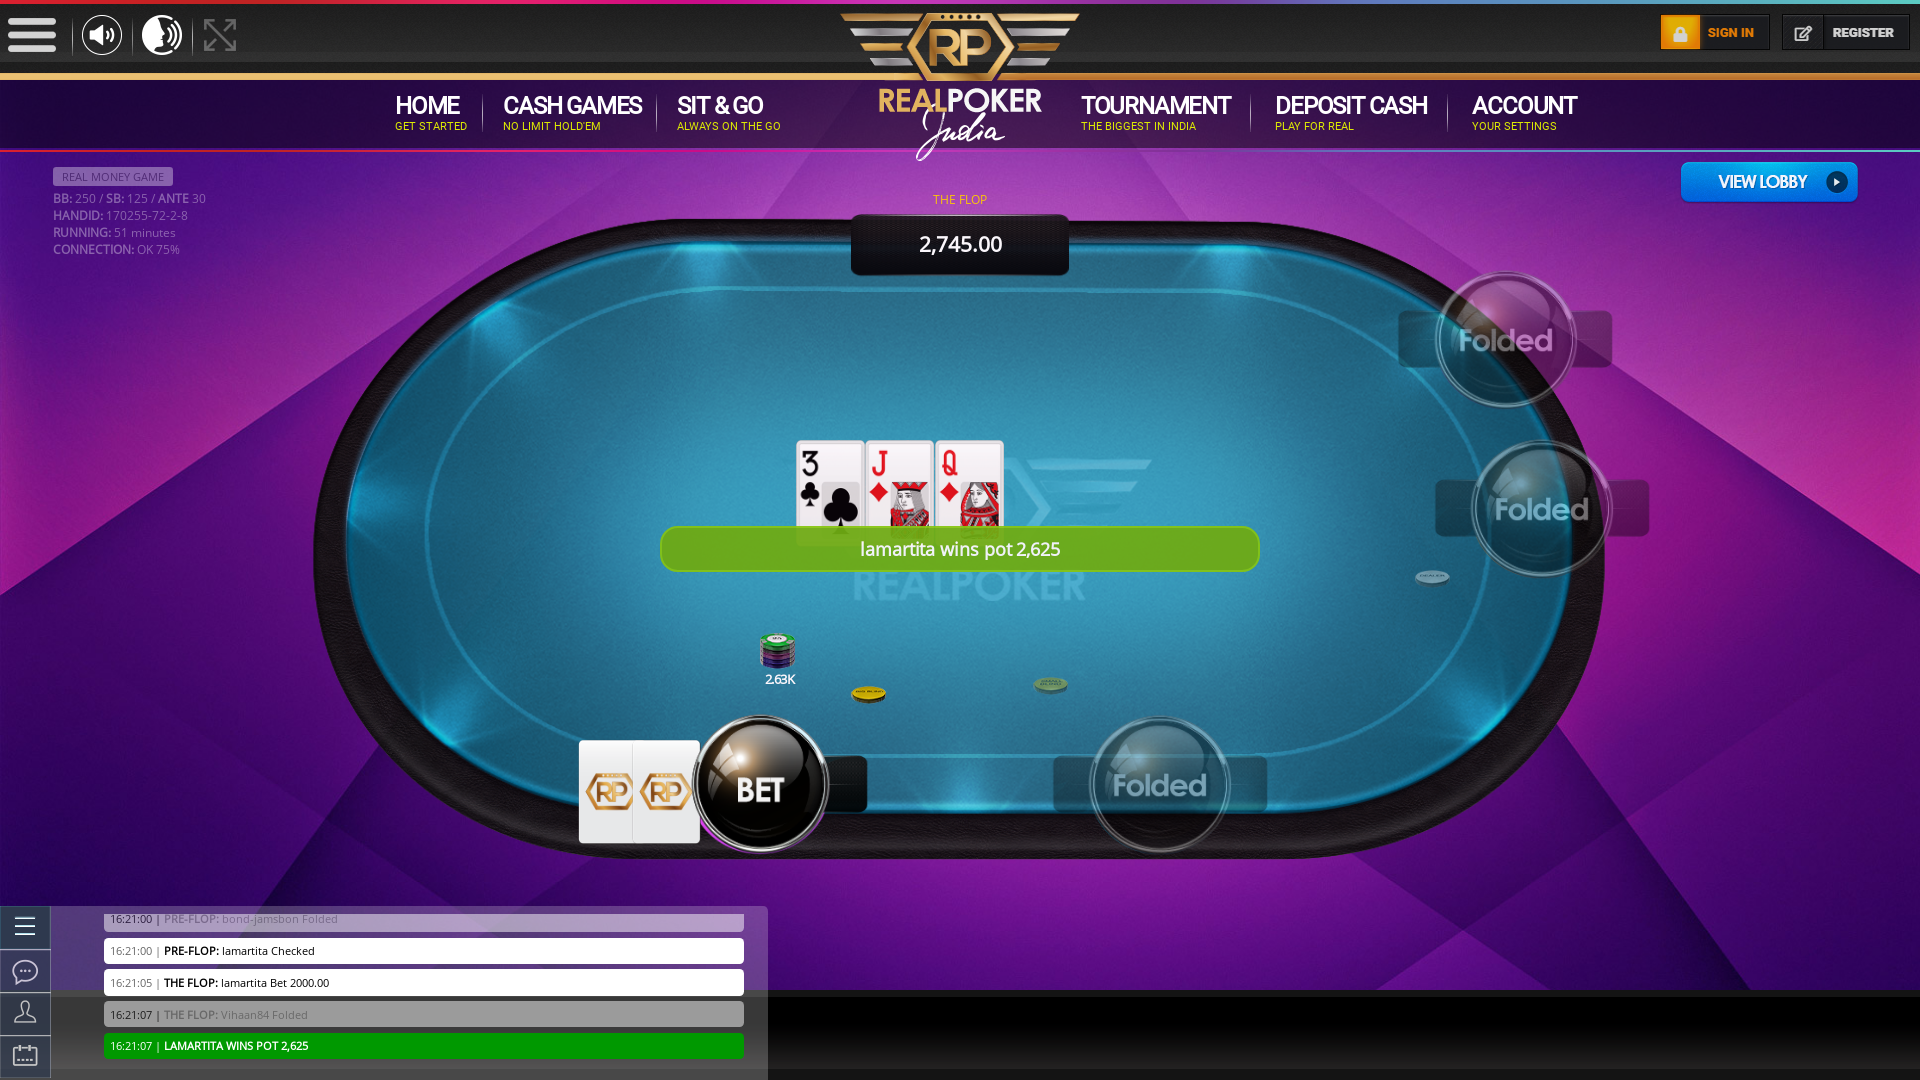 10 player texas holdem table at real poker with the table id 170255